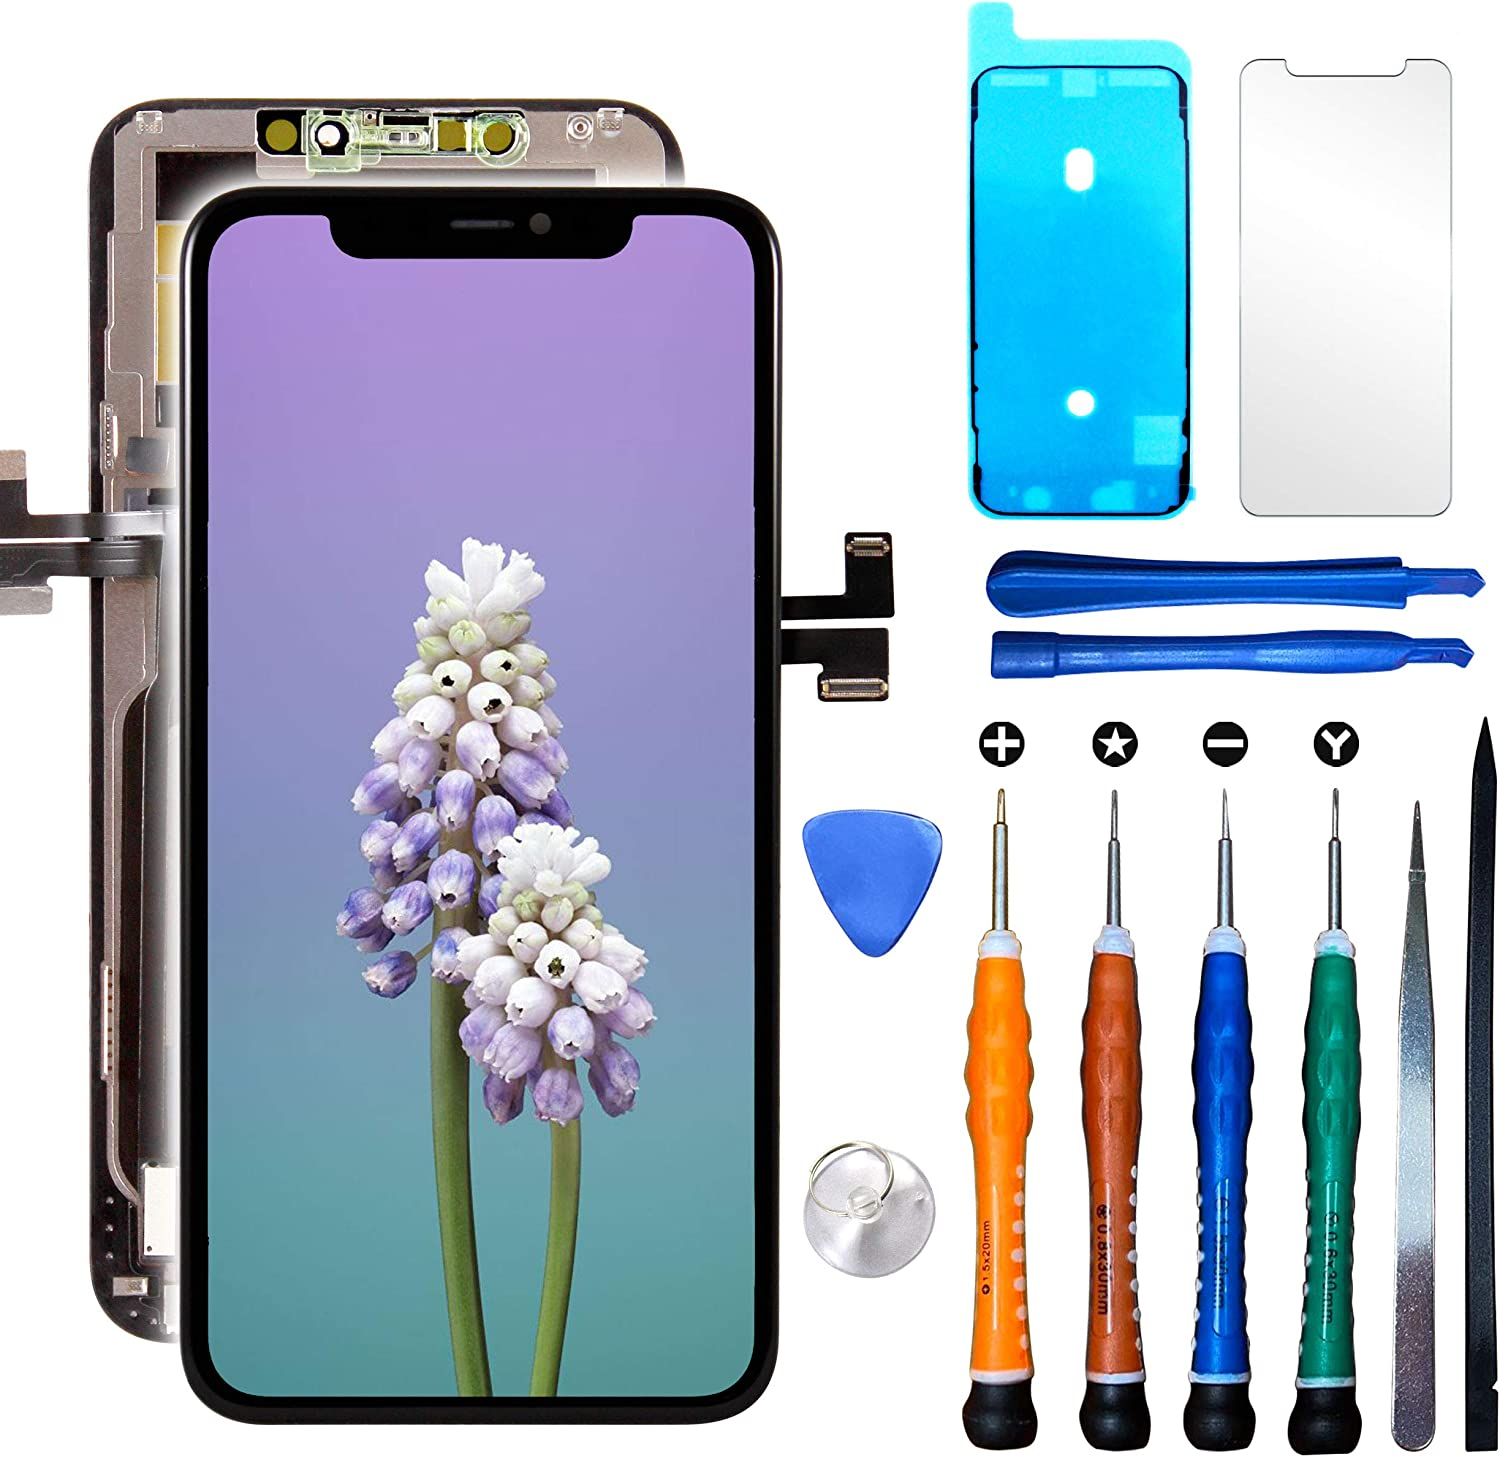 LCD Screen Replacement Compatible with iPhone 11 Pro Max 6.5 inch (Model A2161, A2220, A2218) 3D Touch Screen Display Digitizer Frame Assembly Repair Kit with Repair Tools